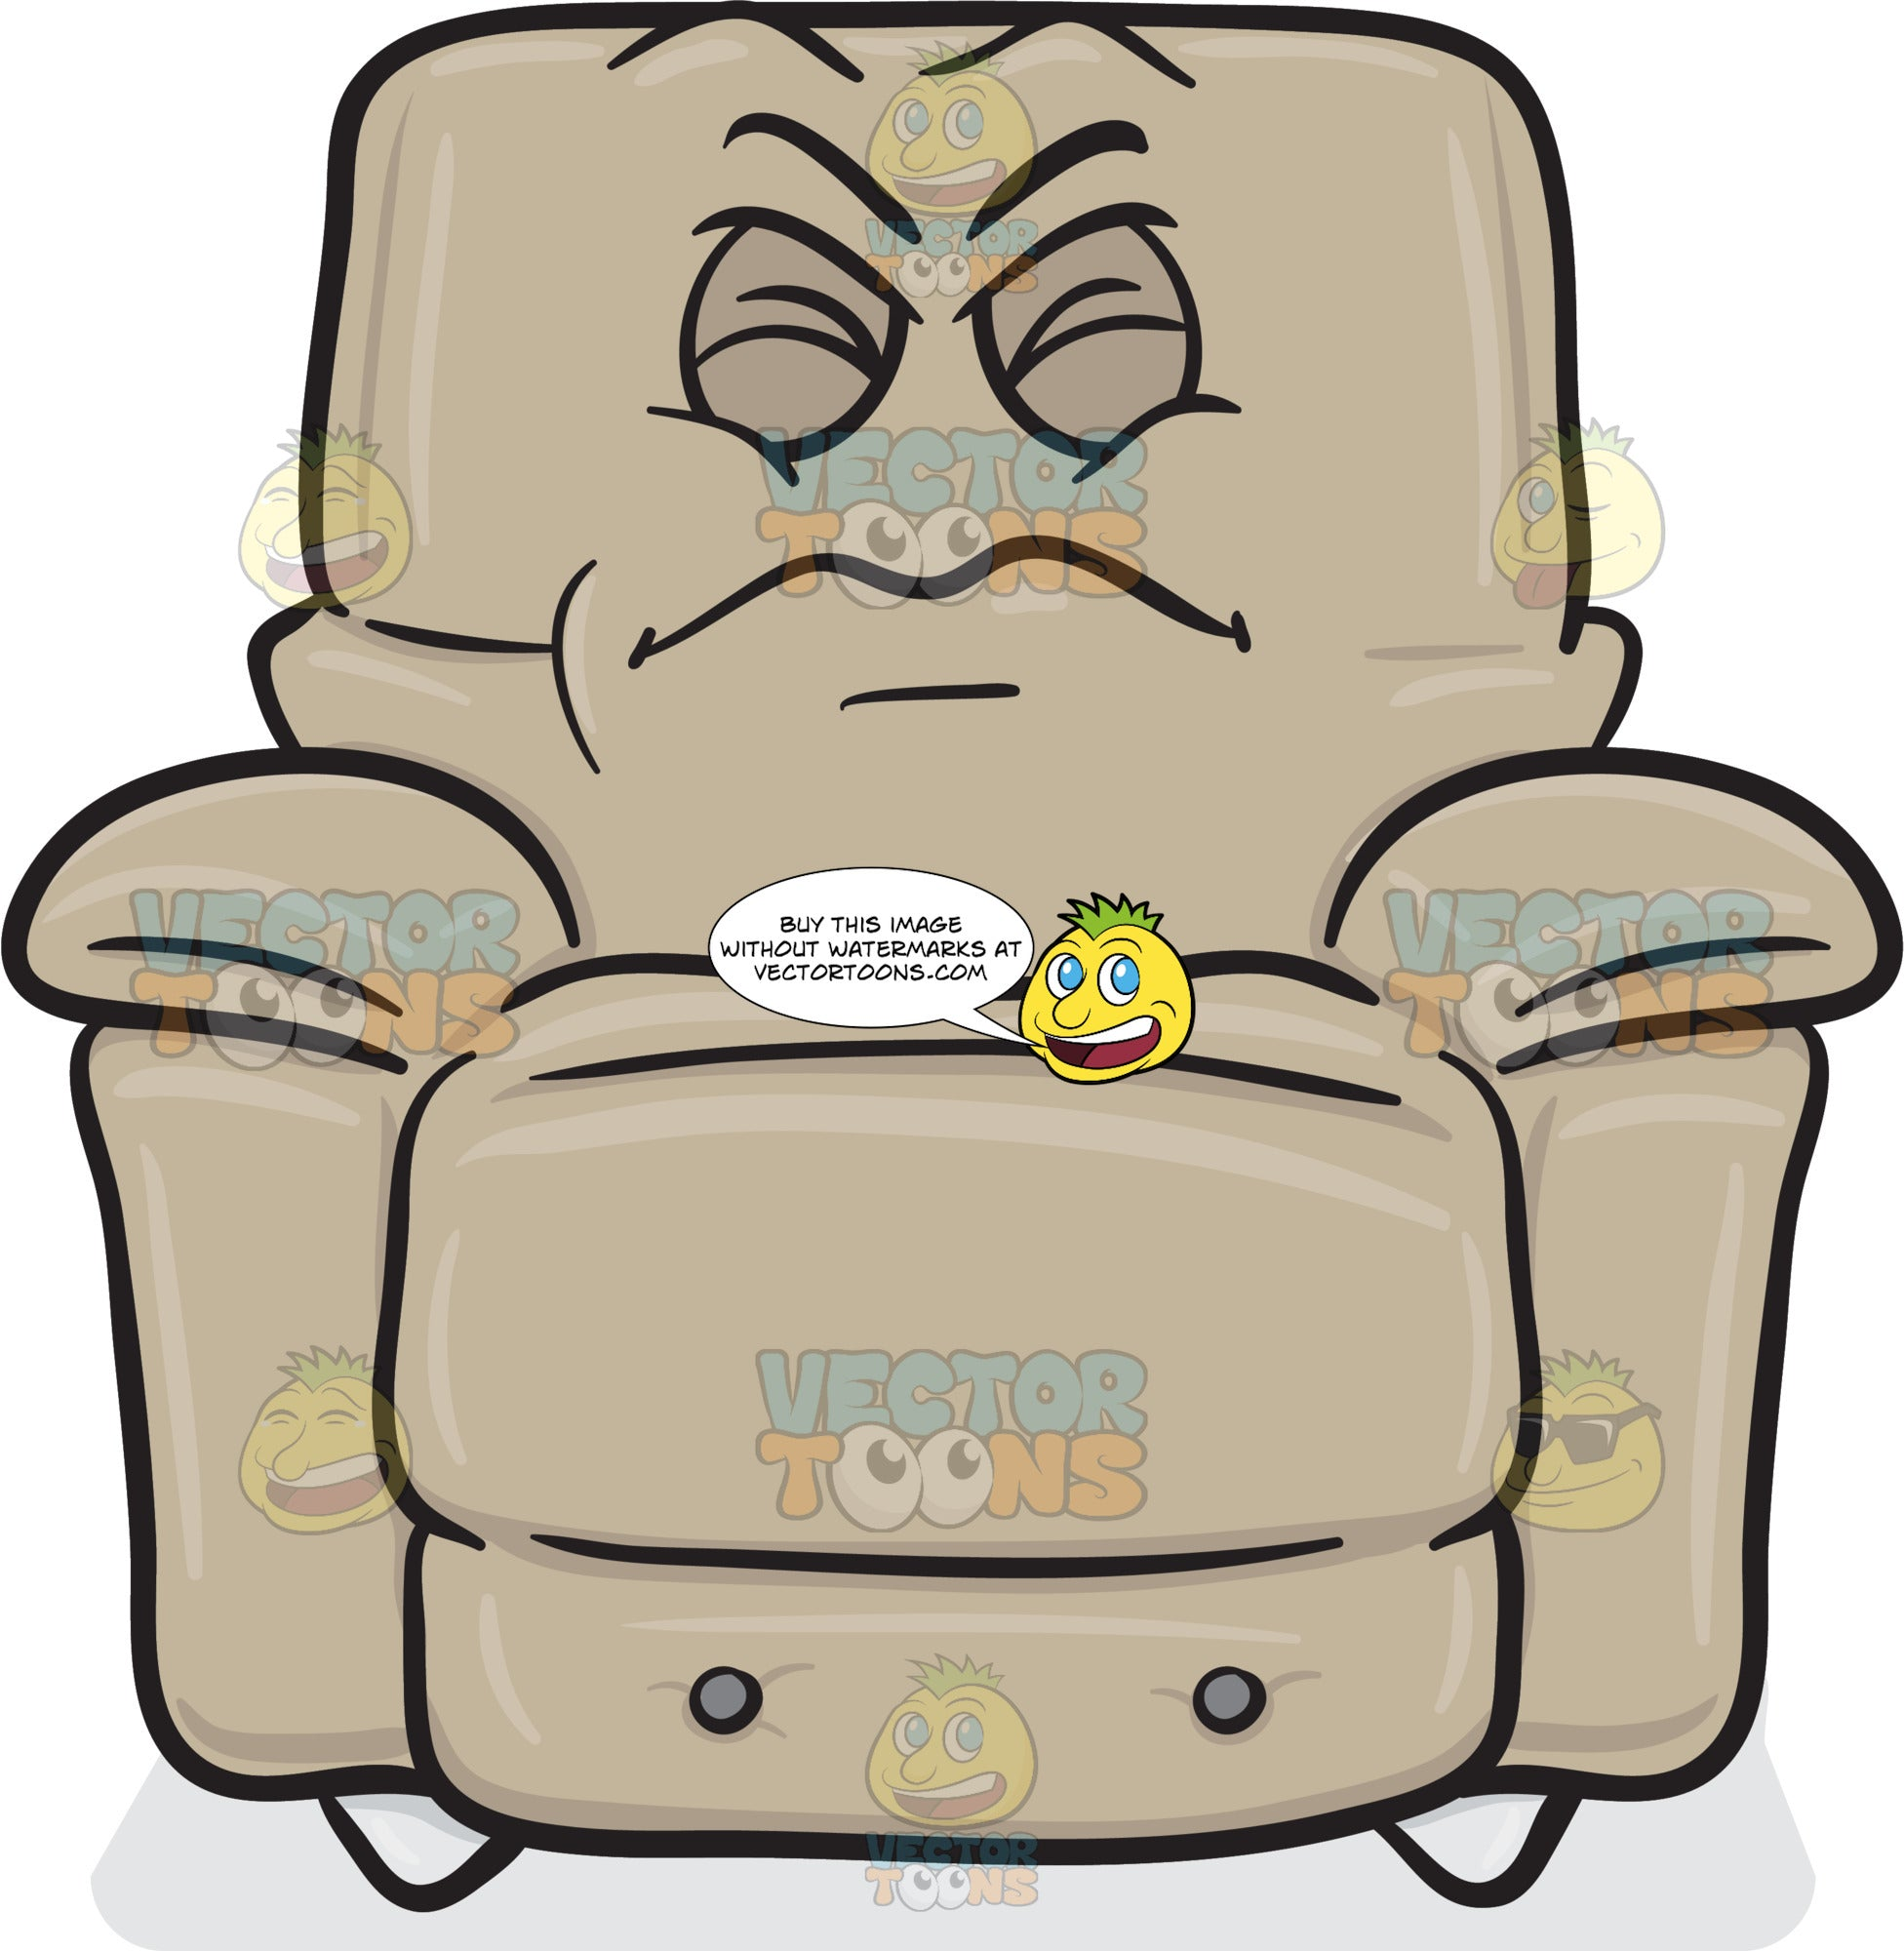 Disgruntled Look On Stuffed Chair Emoji